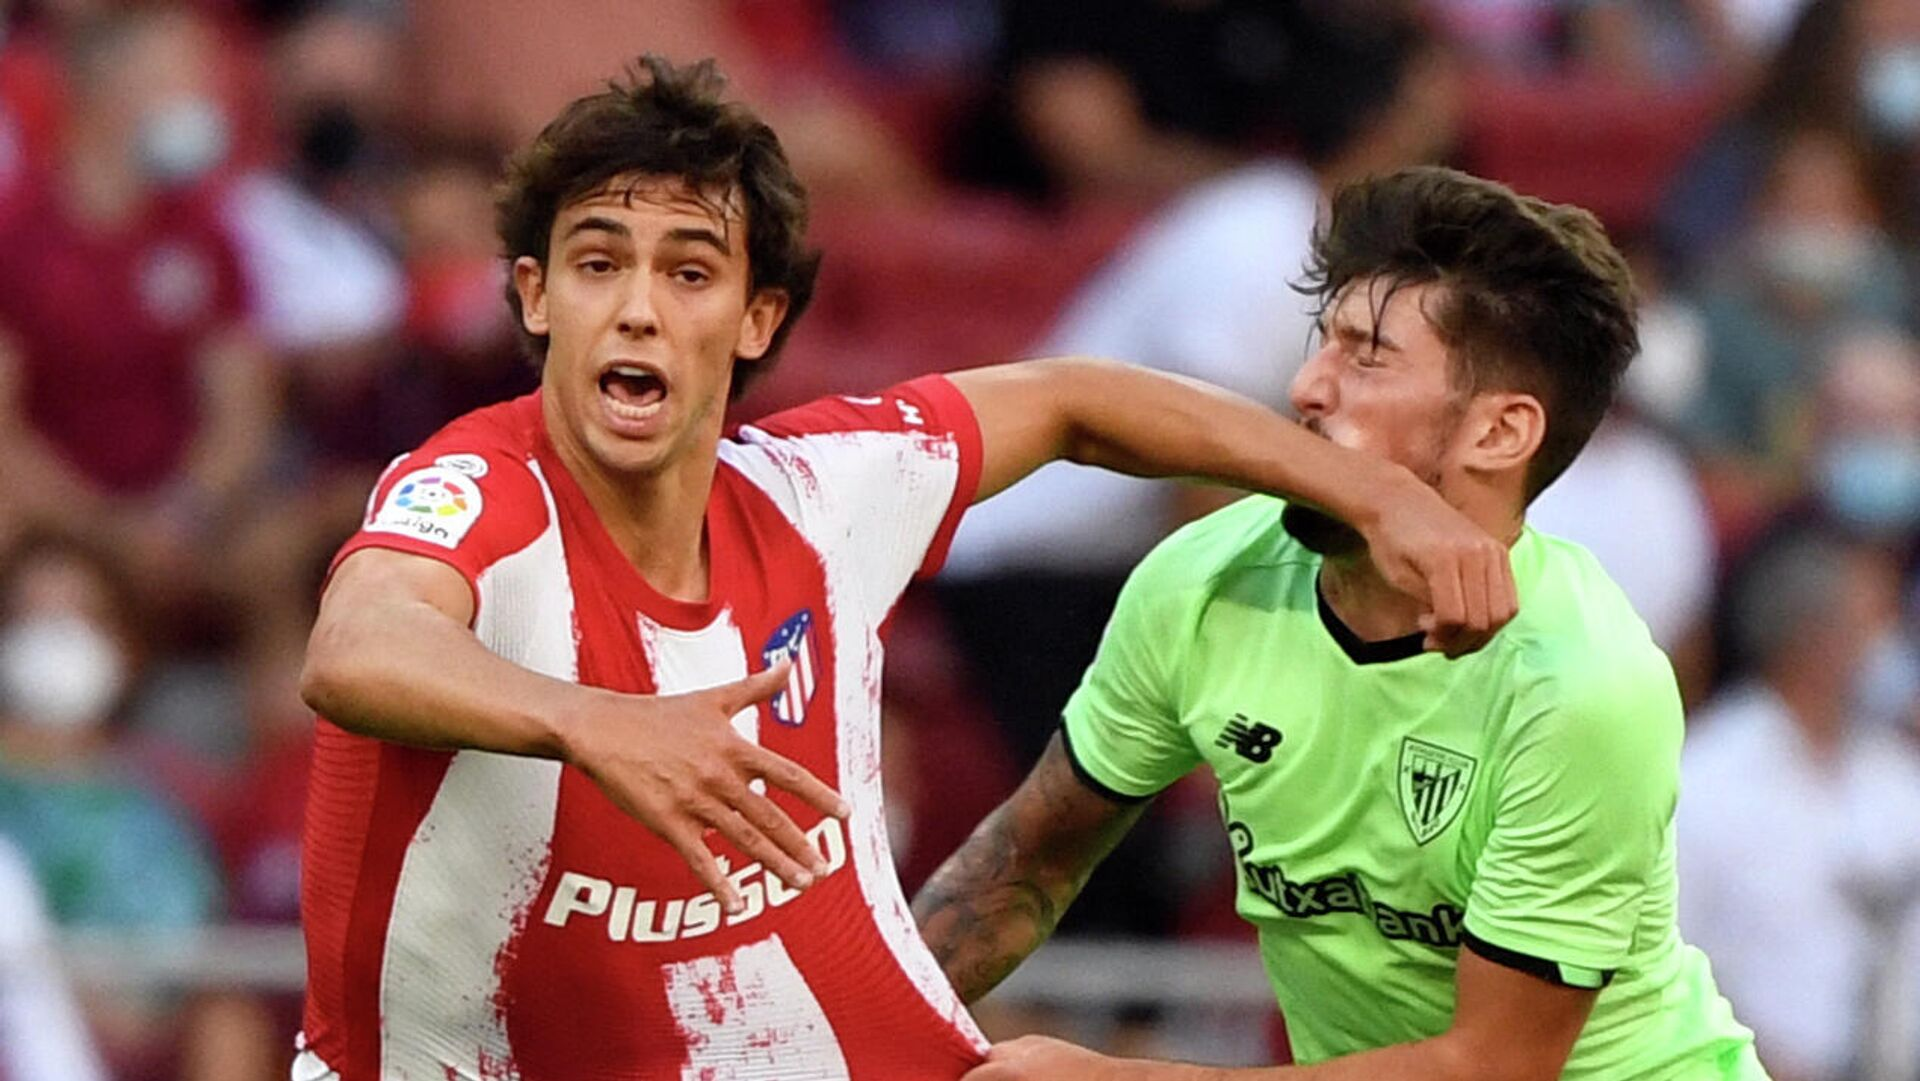 Atletico Madrid's Portuguese midfielder Joao Felix (L) fouls Athletic Bilbao's Spanish midfielder Unai Vencedor during the Spanish League football match between Club Atletico de Madrid and Athletic Club Bilbao at the Wanda Metropolitano stadium in Madrid on September 18, 2021. (Photo by PIERRE-PHILIPPE MARCOU / AFP) - РИА Новости, 1920, 18.09.2021